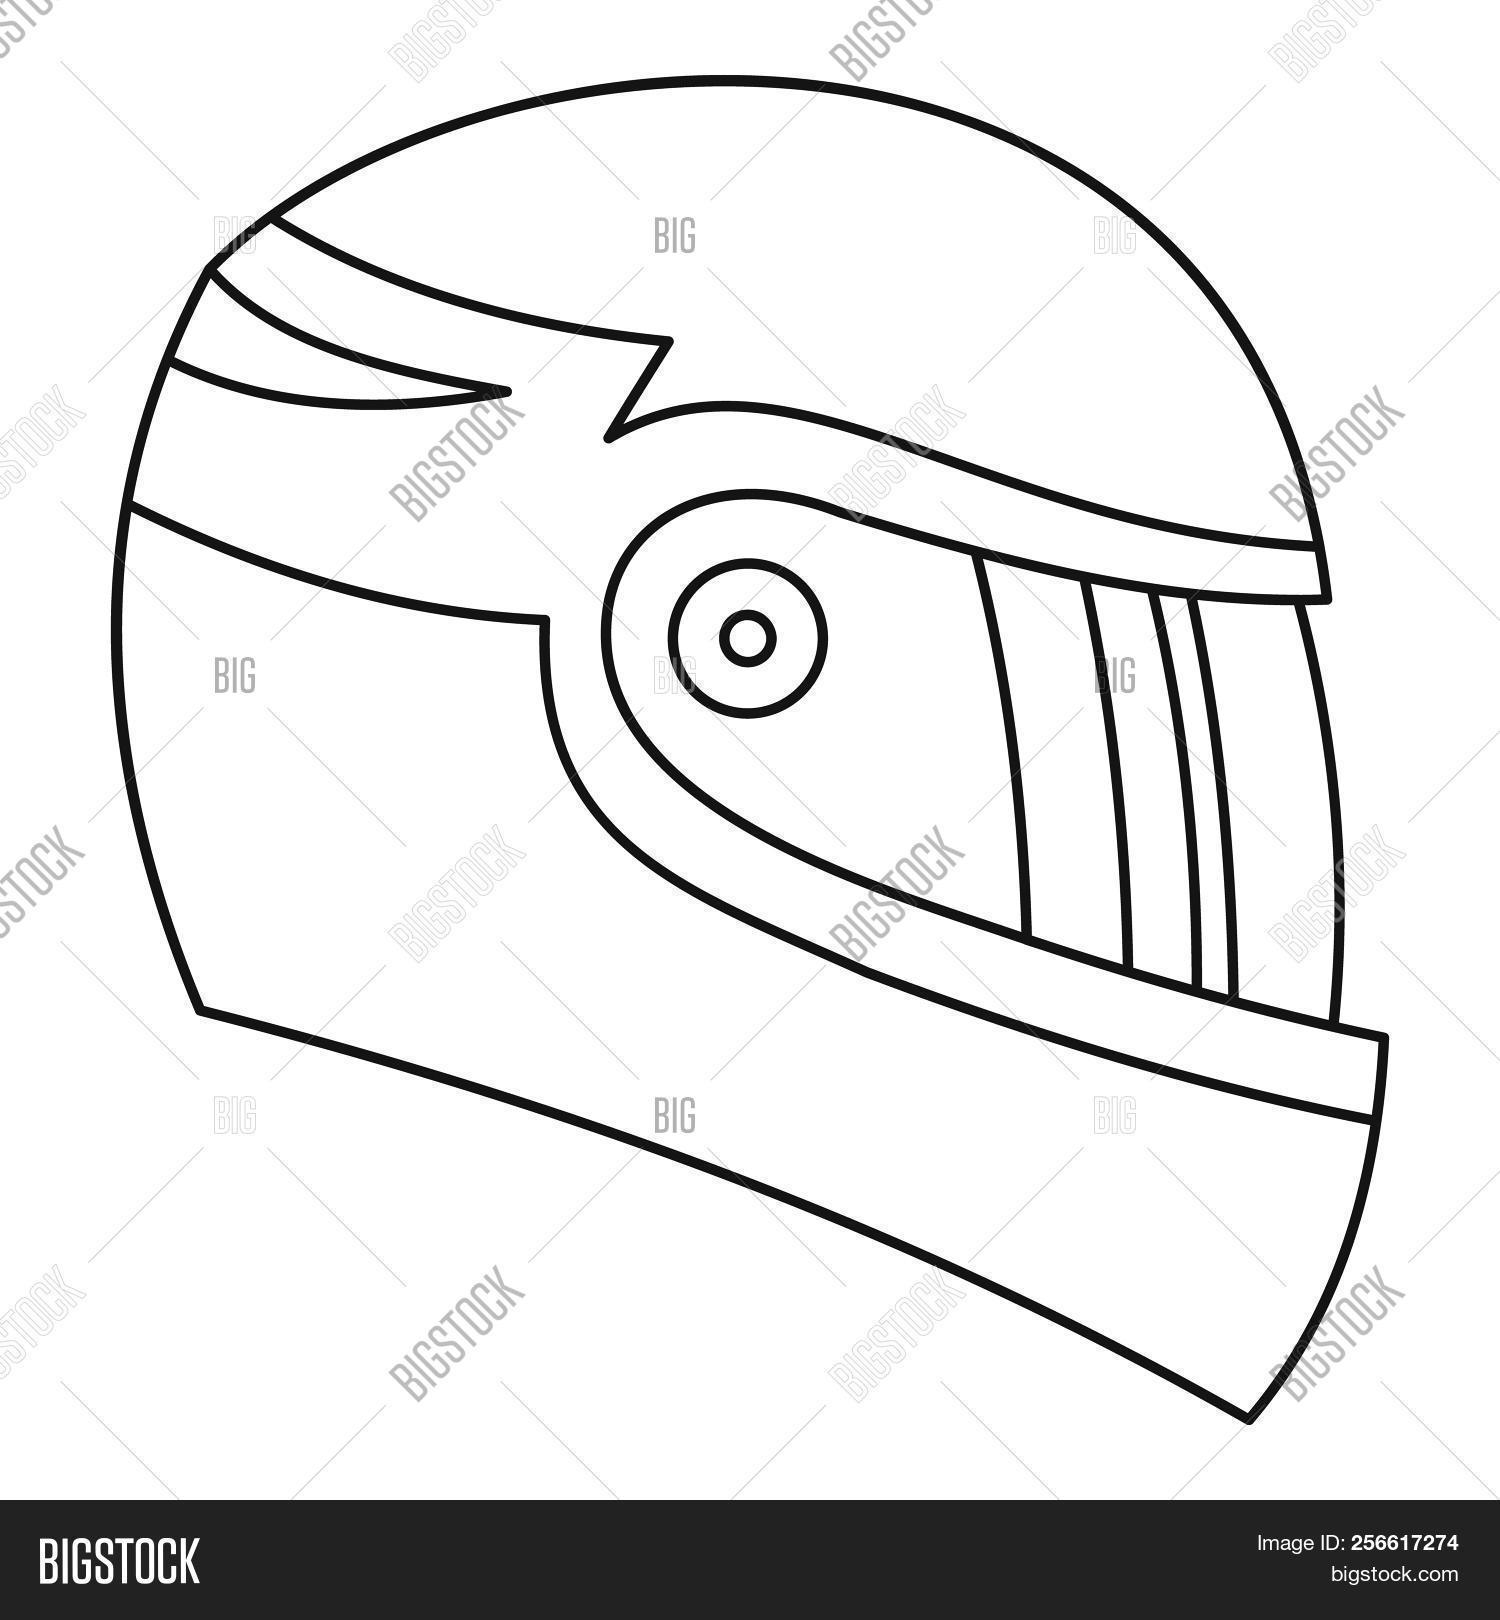 motorcycle helmet icon  outline illustration of motorcycle helmet icon for  web